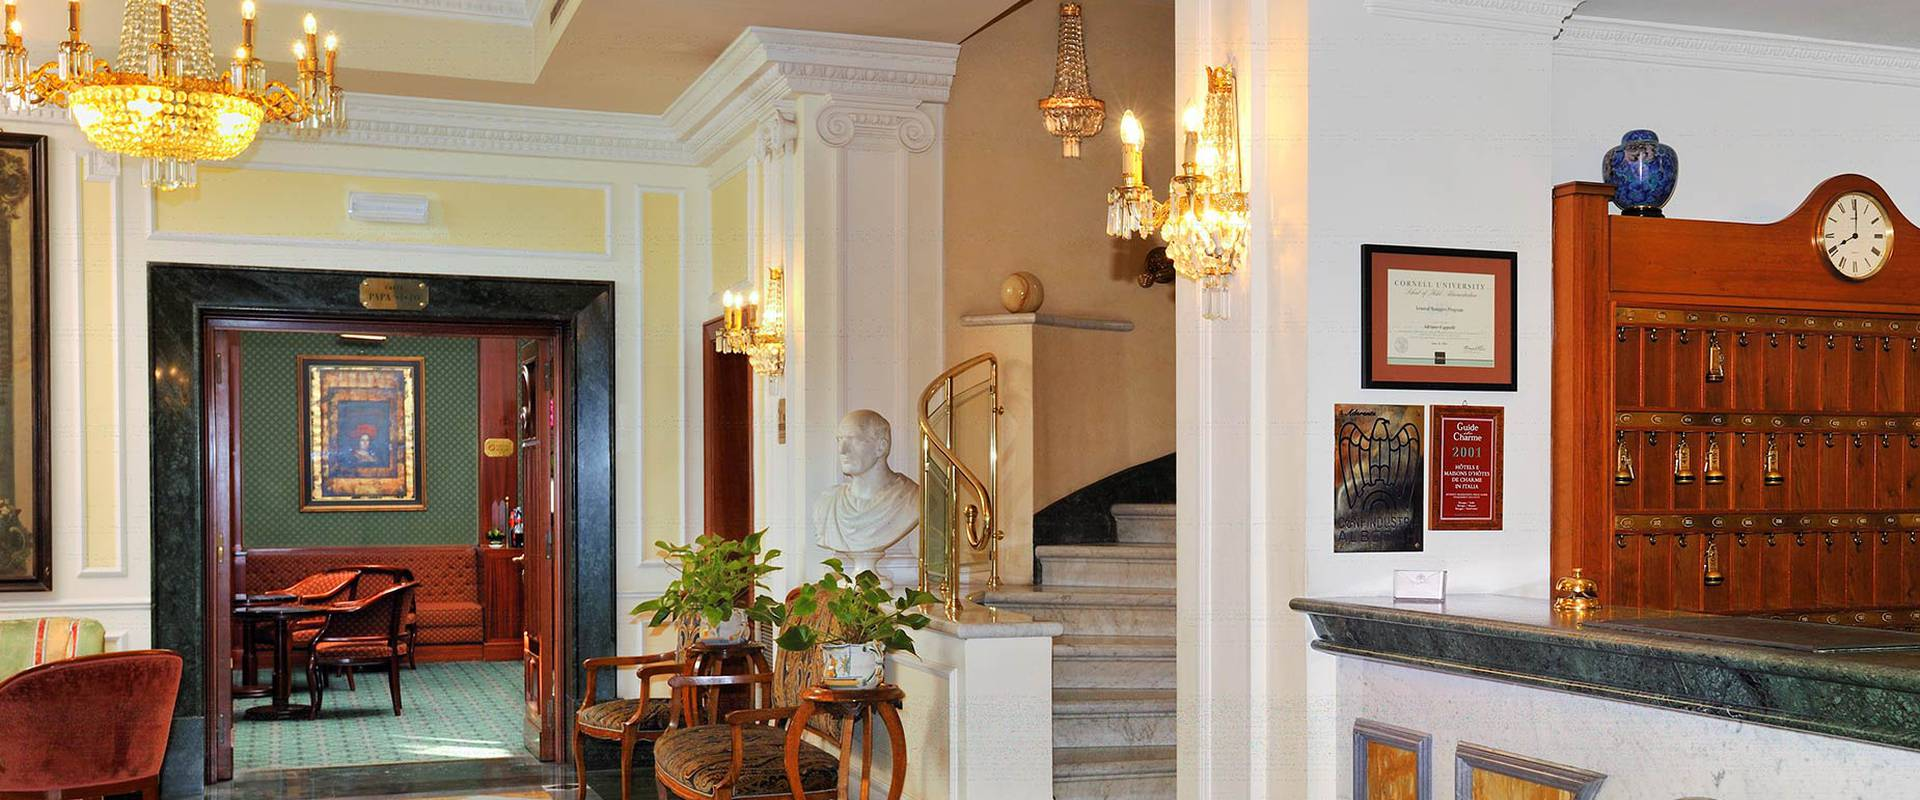 WELCOME TO MECENATE PALACE HOTEL Mecenate Palace Hotel Rome